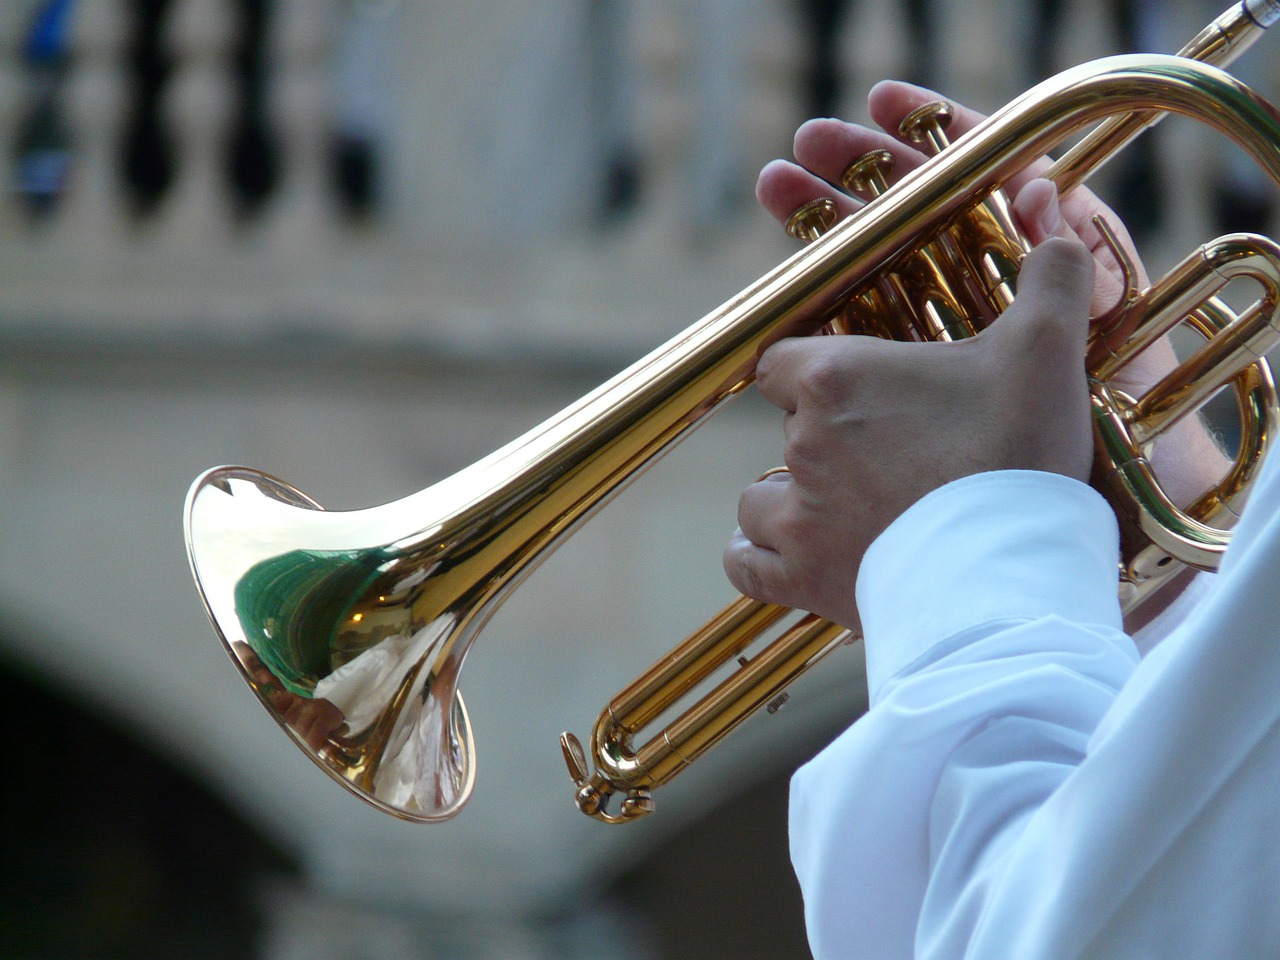 Trumpet and hands of player